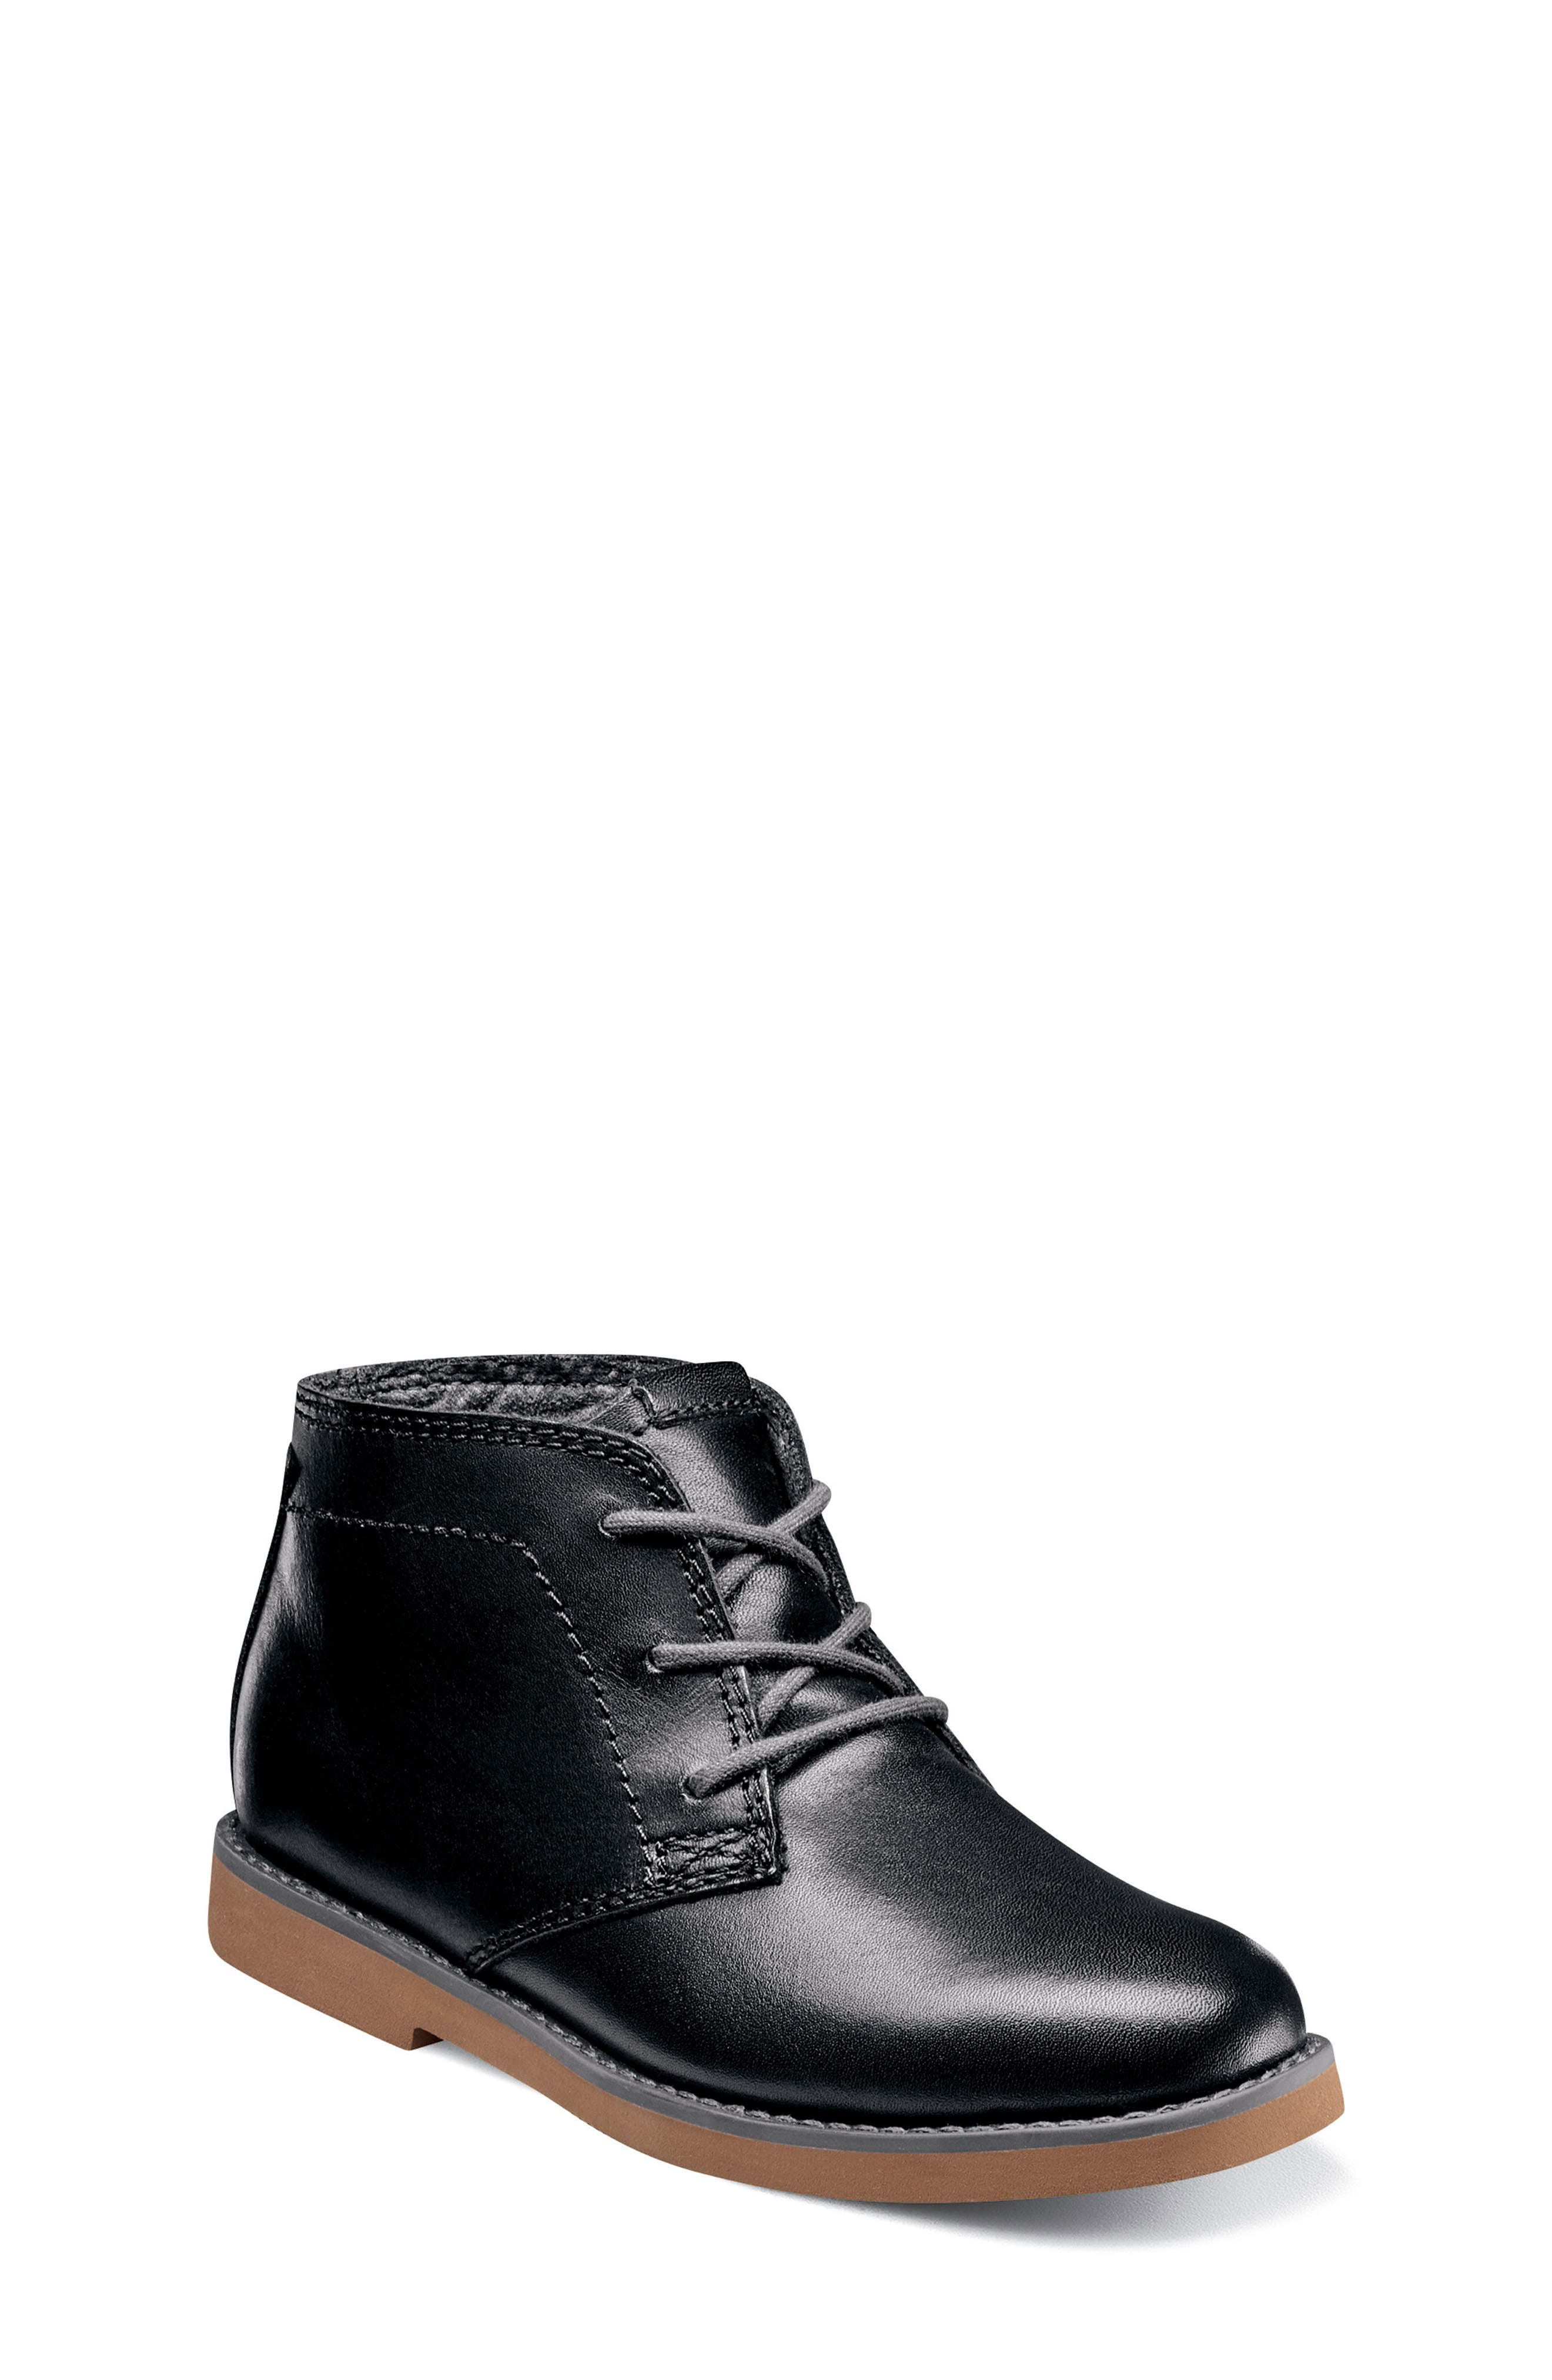 'Bucktown' Chukka Boot,                             Main thumbnail 1, color,                             Black Smooth With Brick Sole